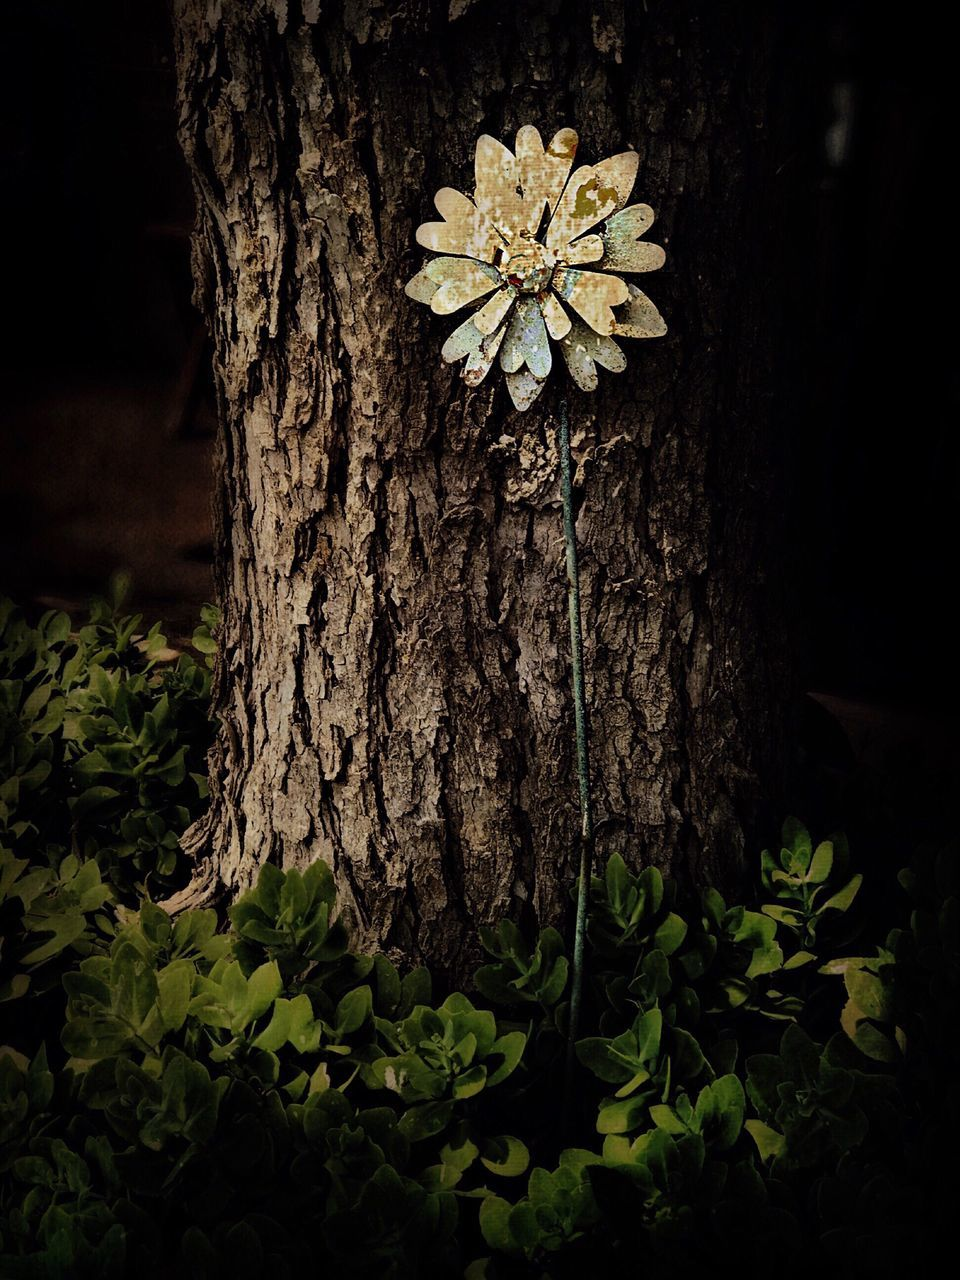 tree trunk, tree, growth, nature, textured, bark, beauty in nature, outdoors, no people, leaf, plant, close-up, day, flower, fragility, fungus, toadstool, freshness